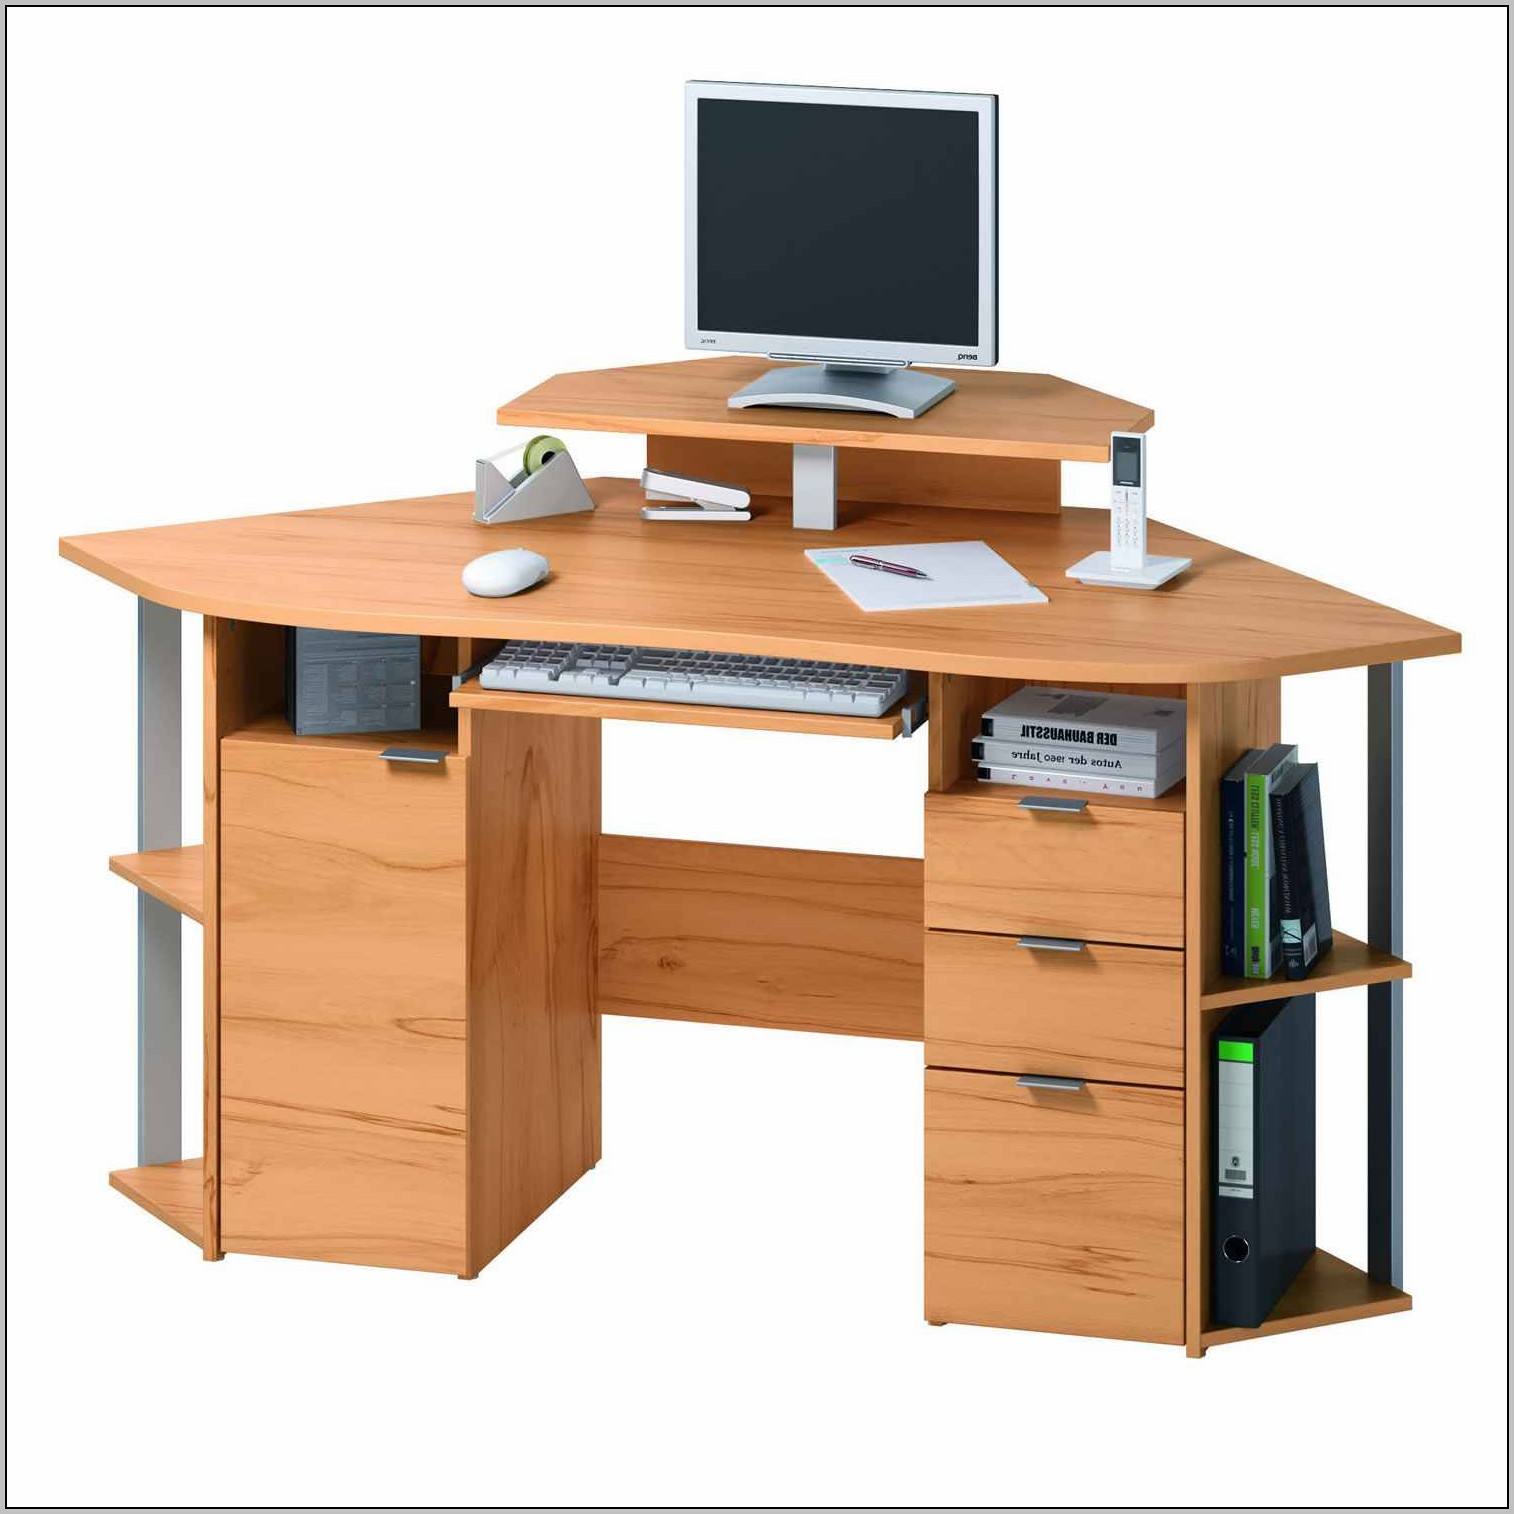 Modern computer desks for small spaces desk home for Home computer desks for small spaces